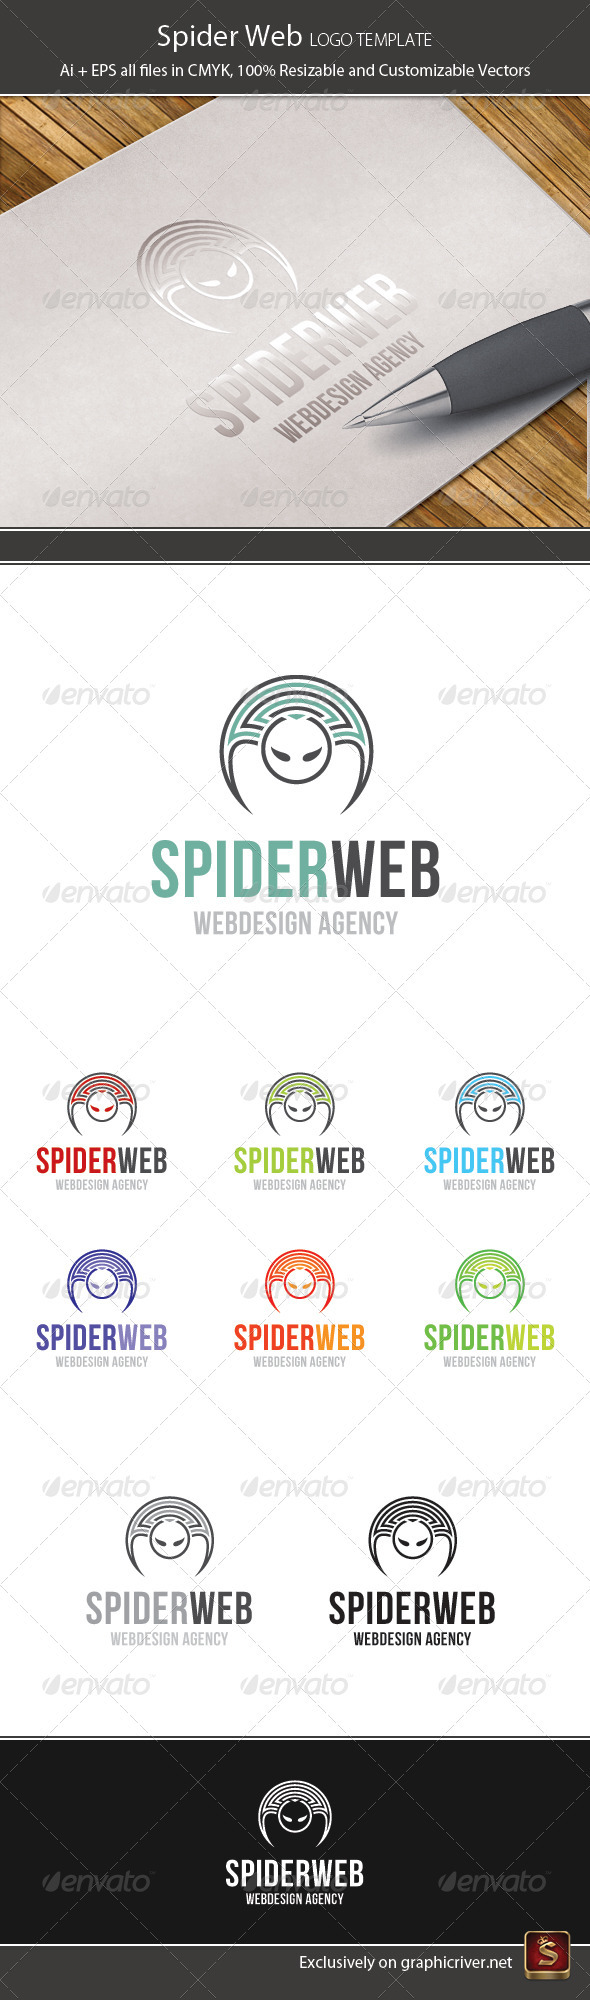 Spider Web Logo Template - Animals Logo Templates